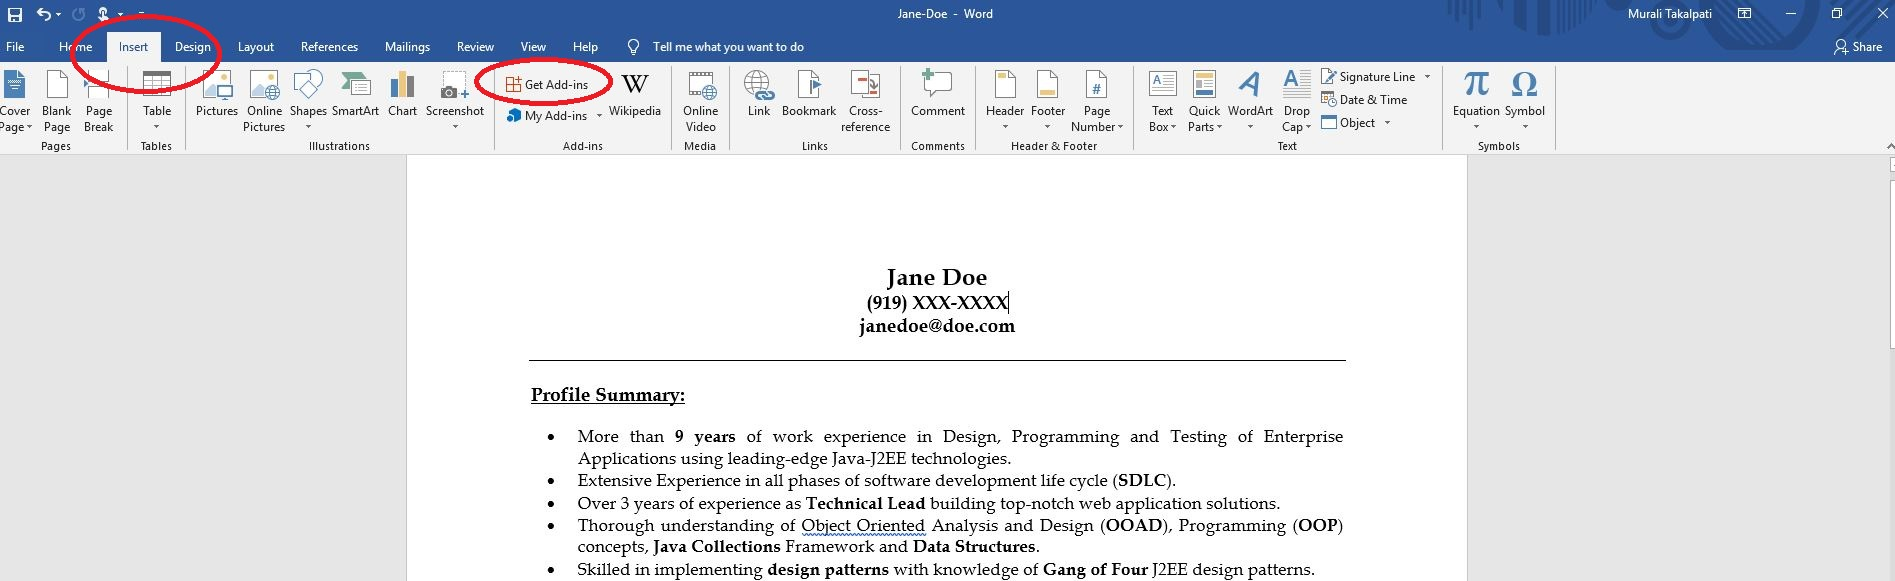 How to add the iReformat App from App Store in Microsoft Word 2013